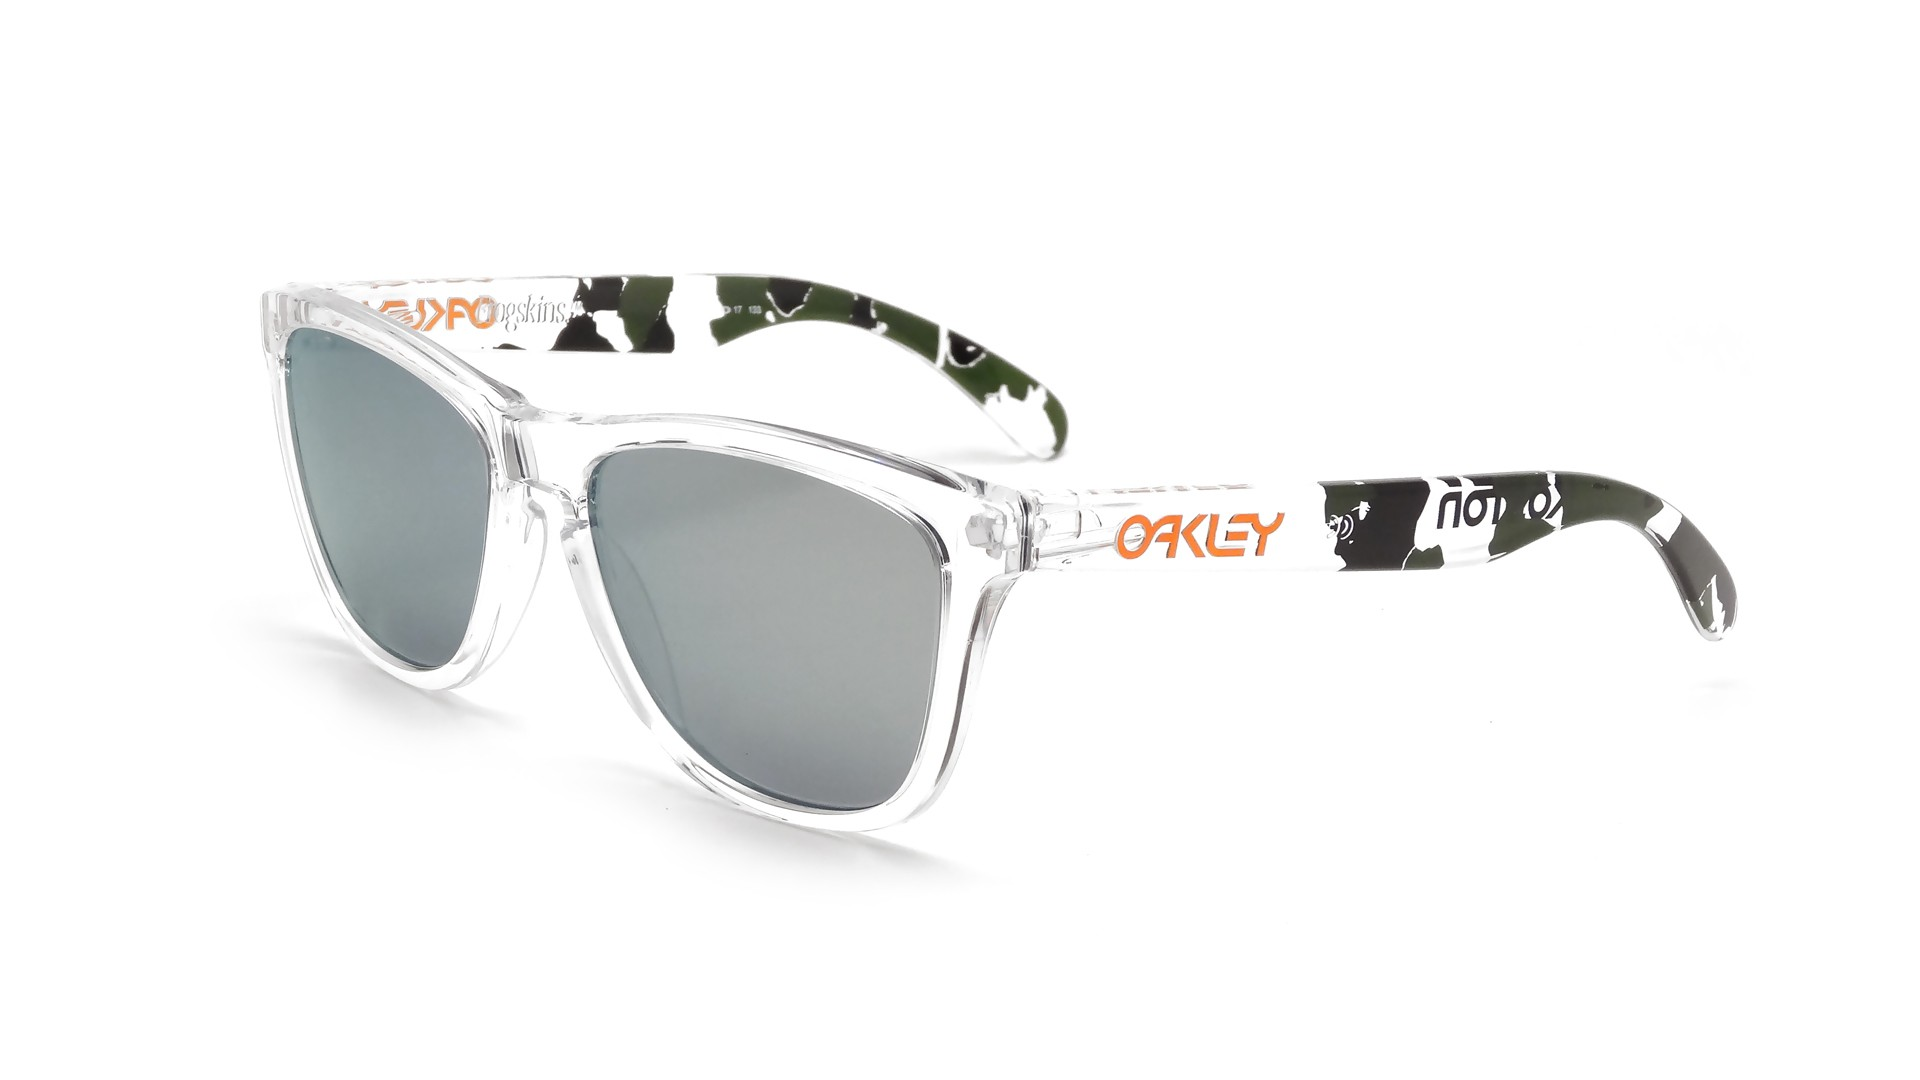 oakley sunglasses styles 1ra5  Oakley Frogskins Clear OO9013 24-436 55-17  Visiofactory